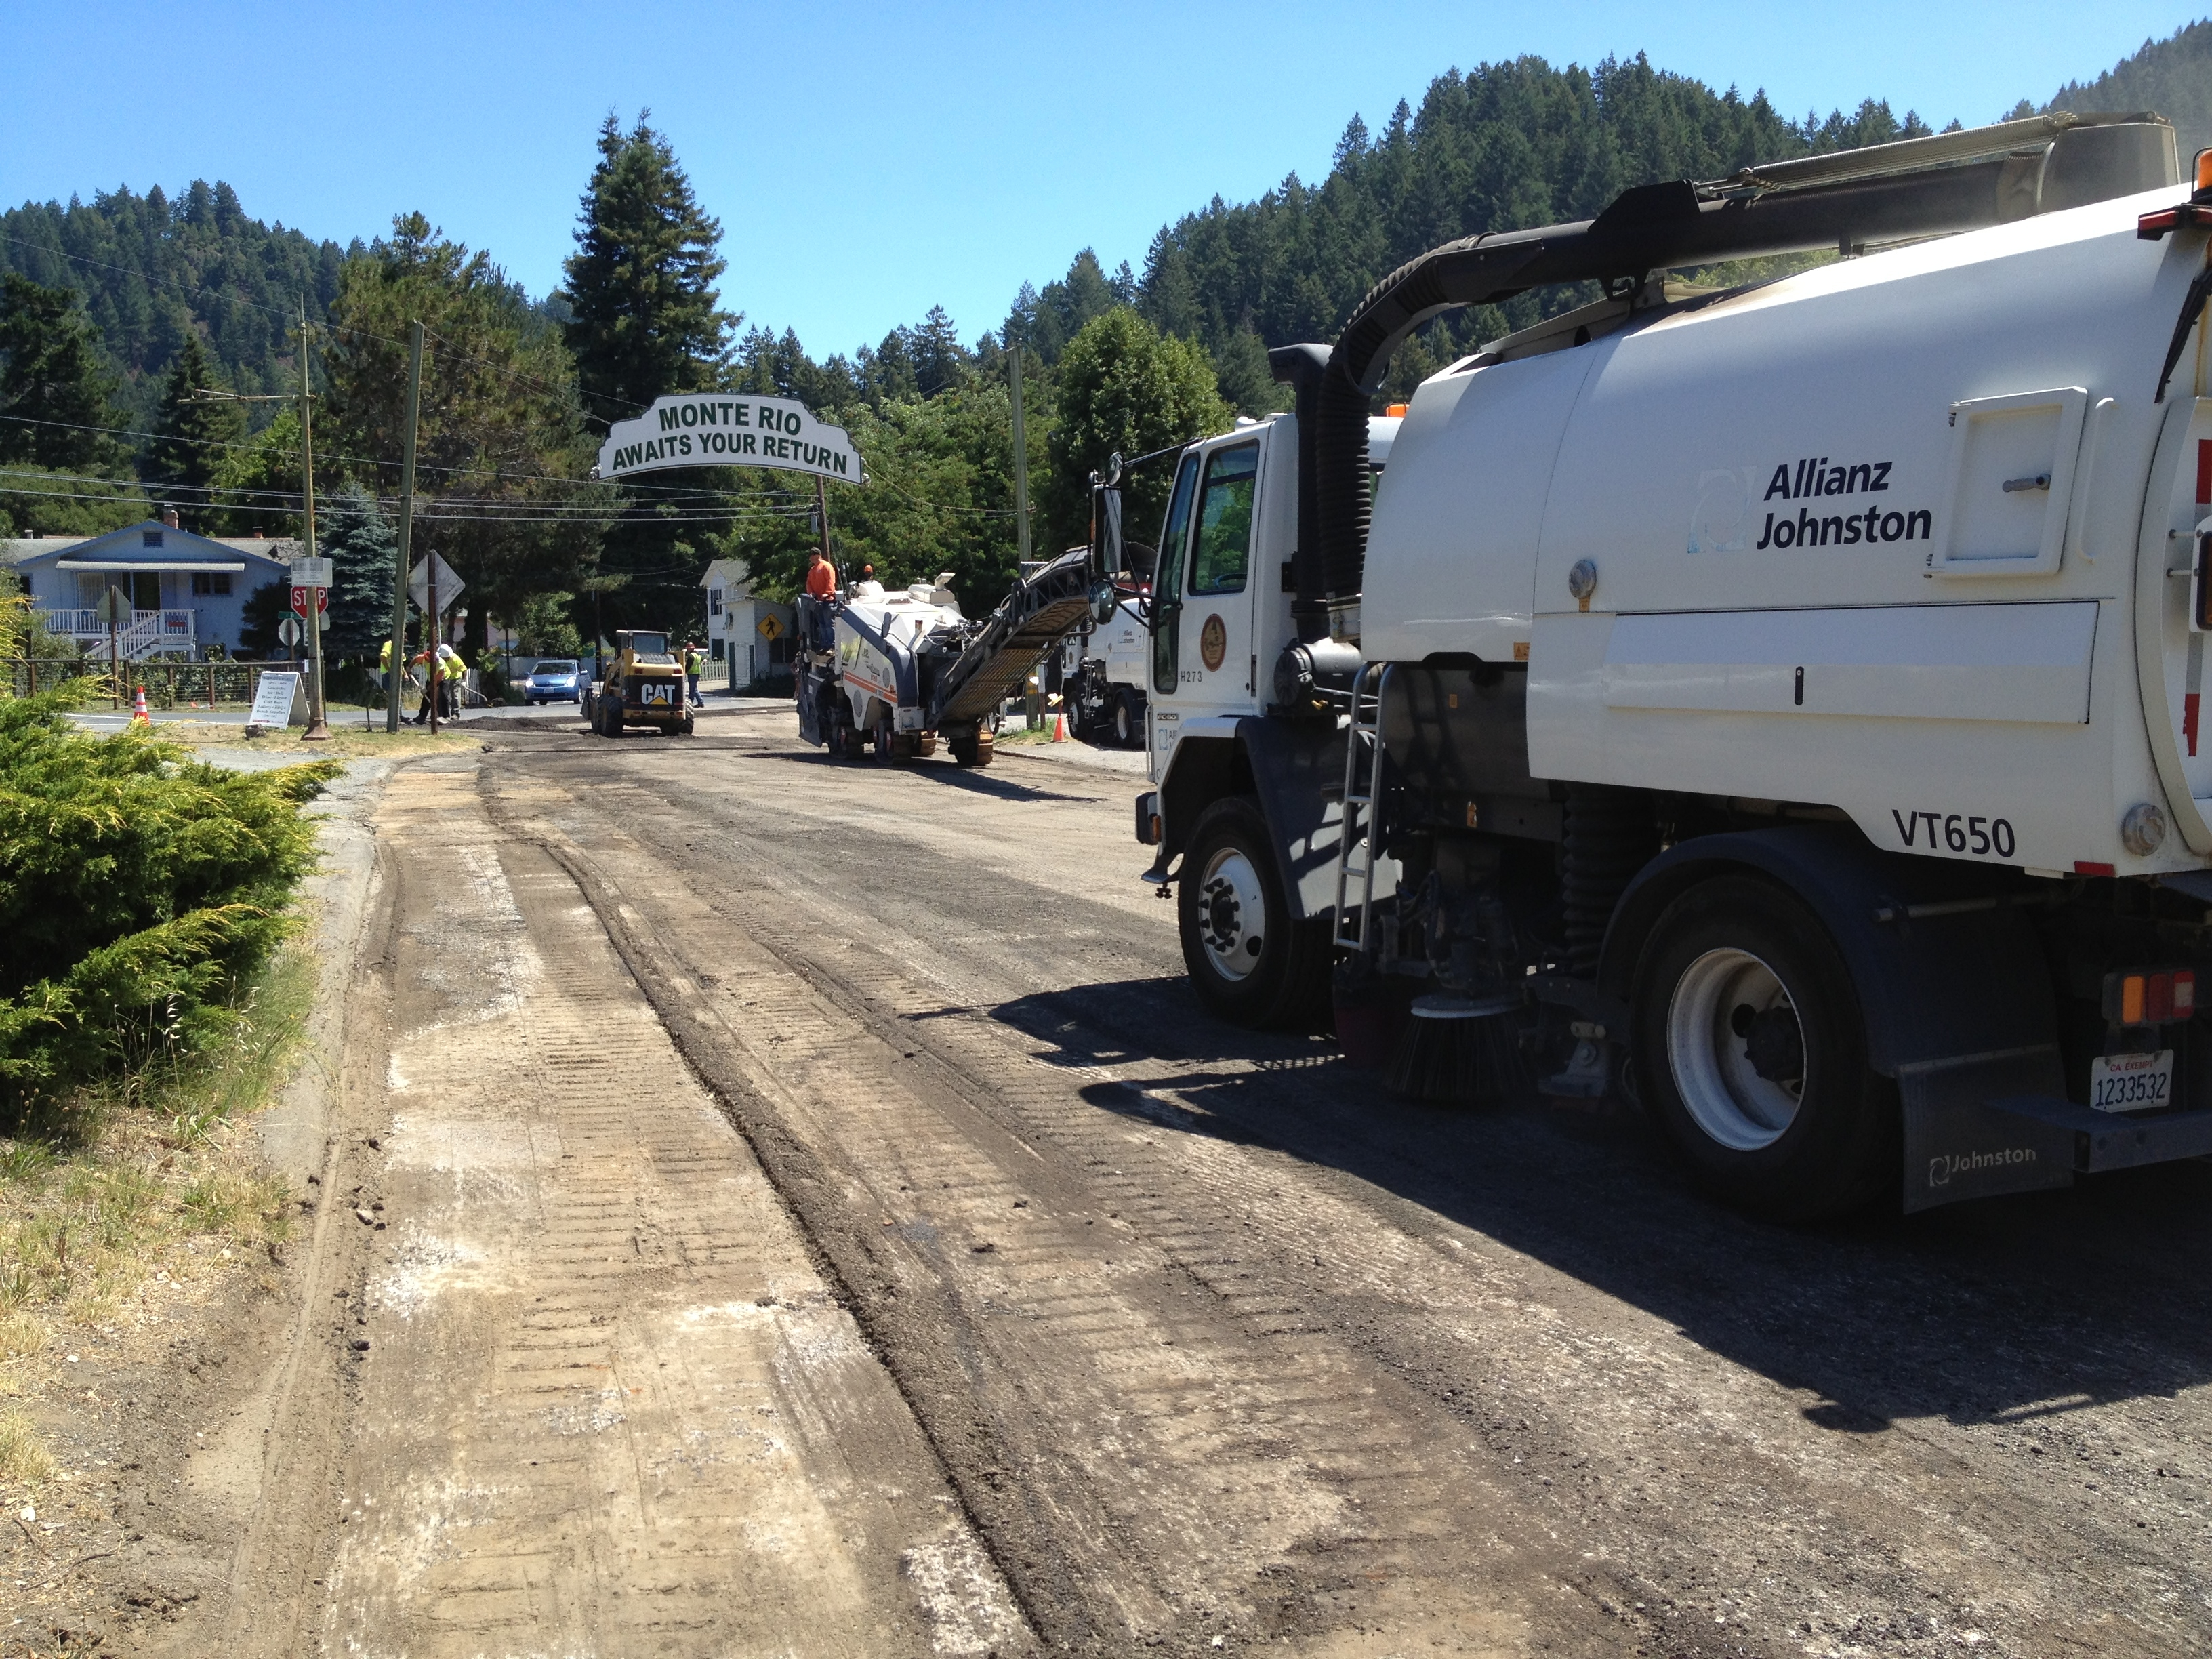 County crews are rebuilding and repaving Main Street in Monte Rio. (Photo courtesy of Rob Silva)